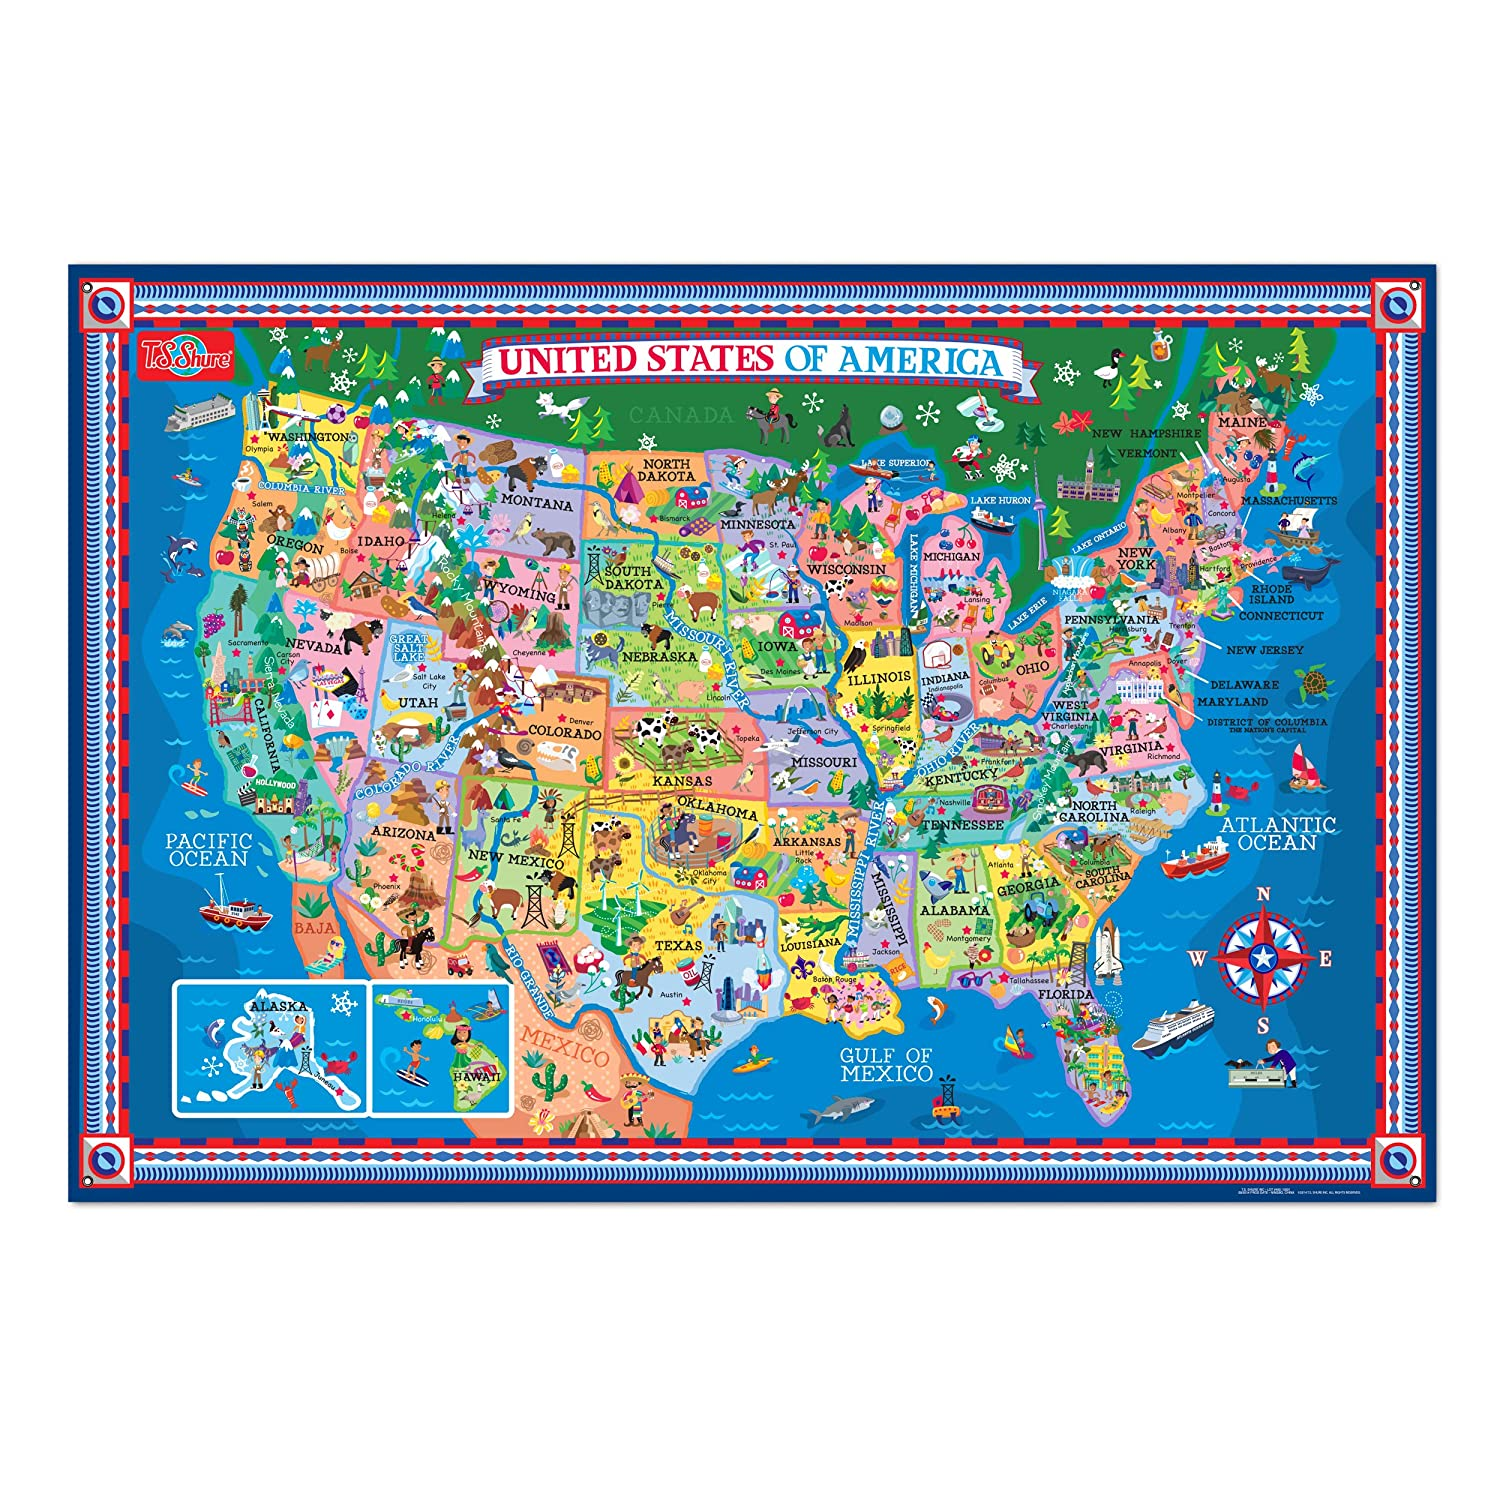 Interactive Map Of The Usa.Ts Shure Pictorial Map Of The United States Of America Laminated Poster With Interactive Stickers